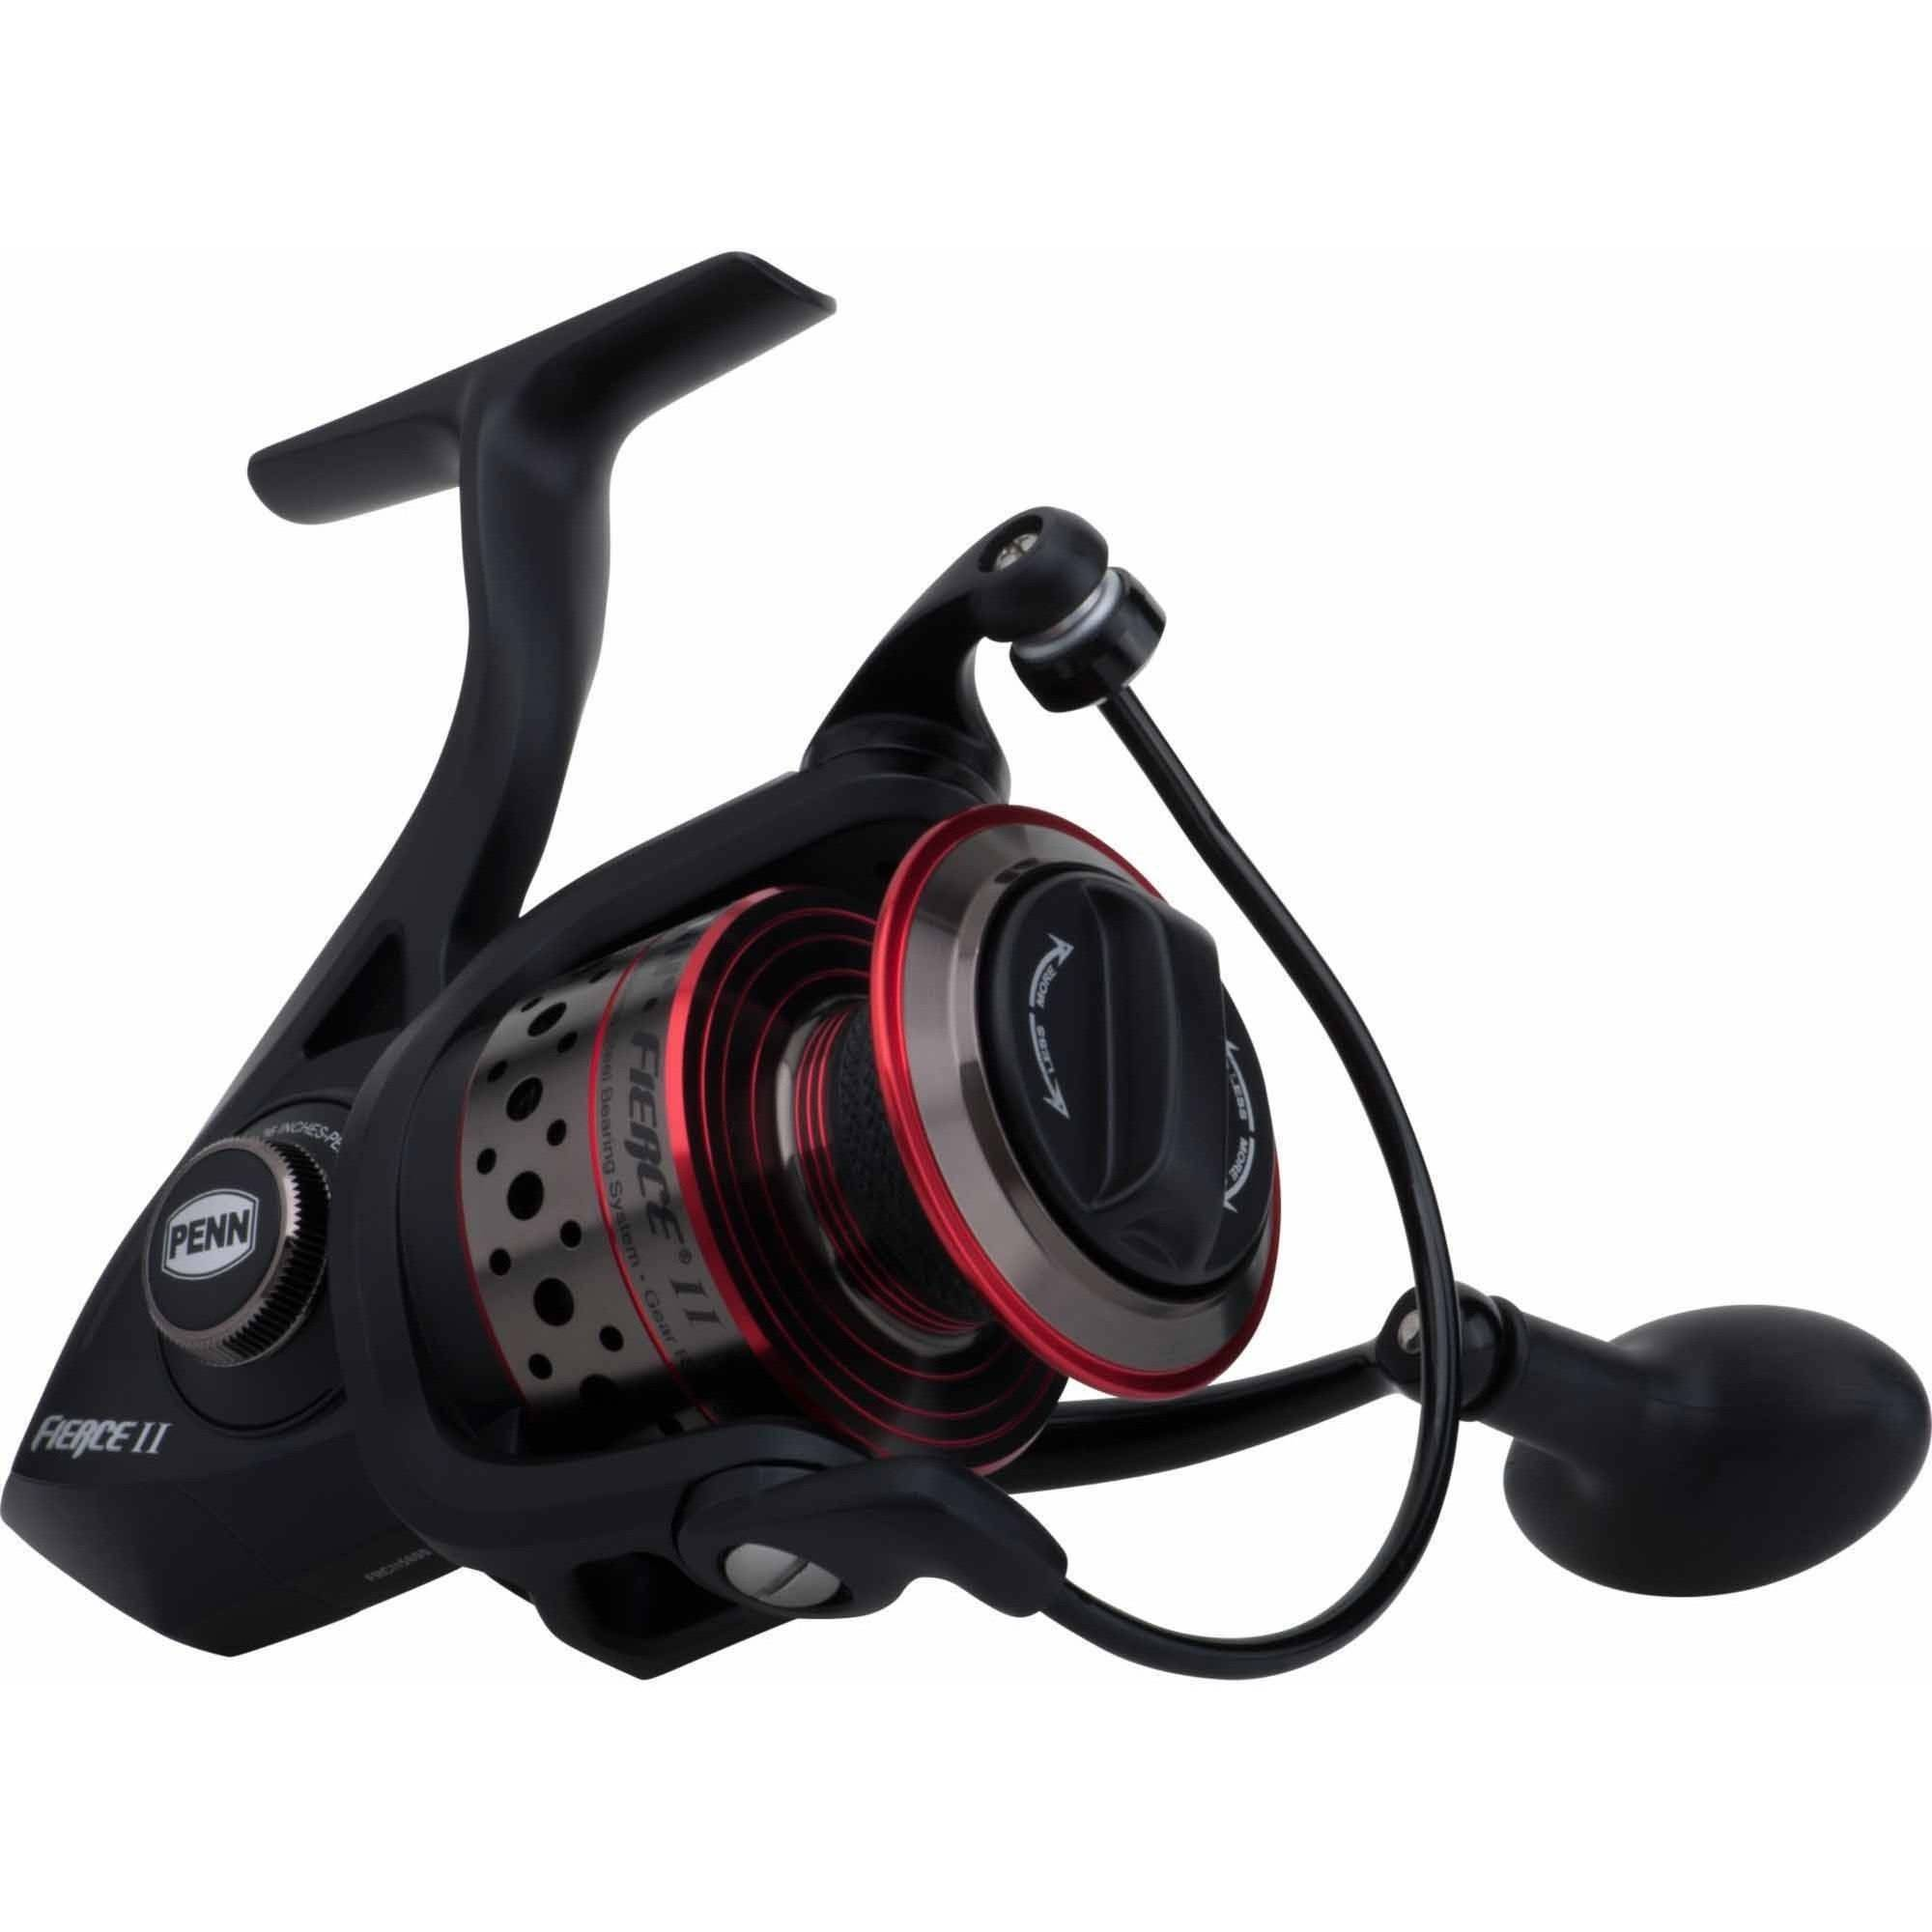 Penn Fierce II 5000 Spinning Reel, Clam Packaged